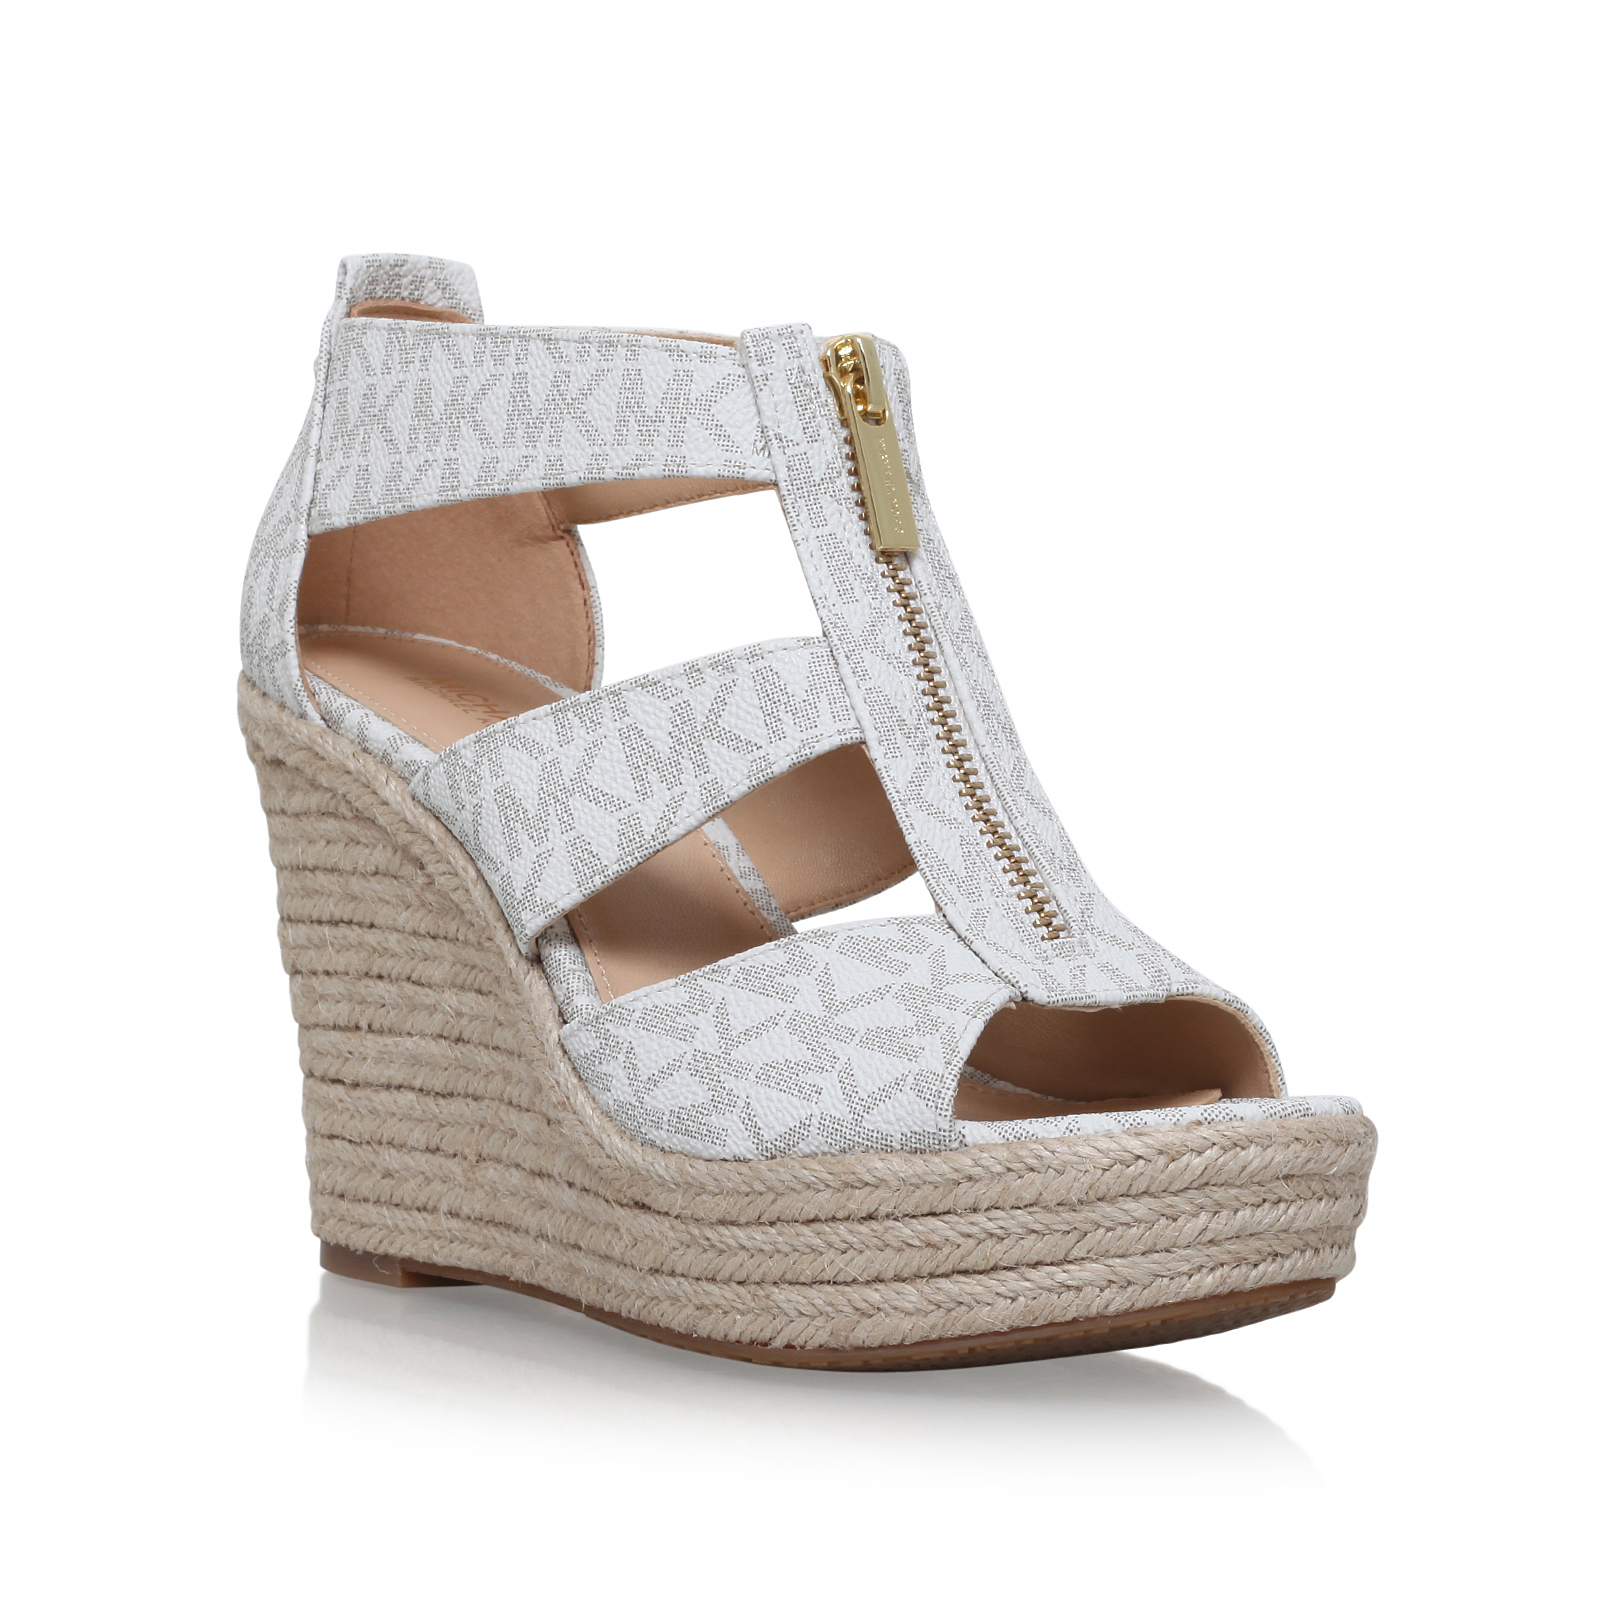 ad32419ab4b4 DAMITA WEDGE Michael Michael Kors Damita Winter White High Heel ...